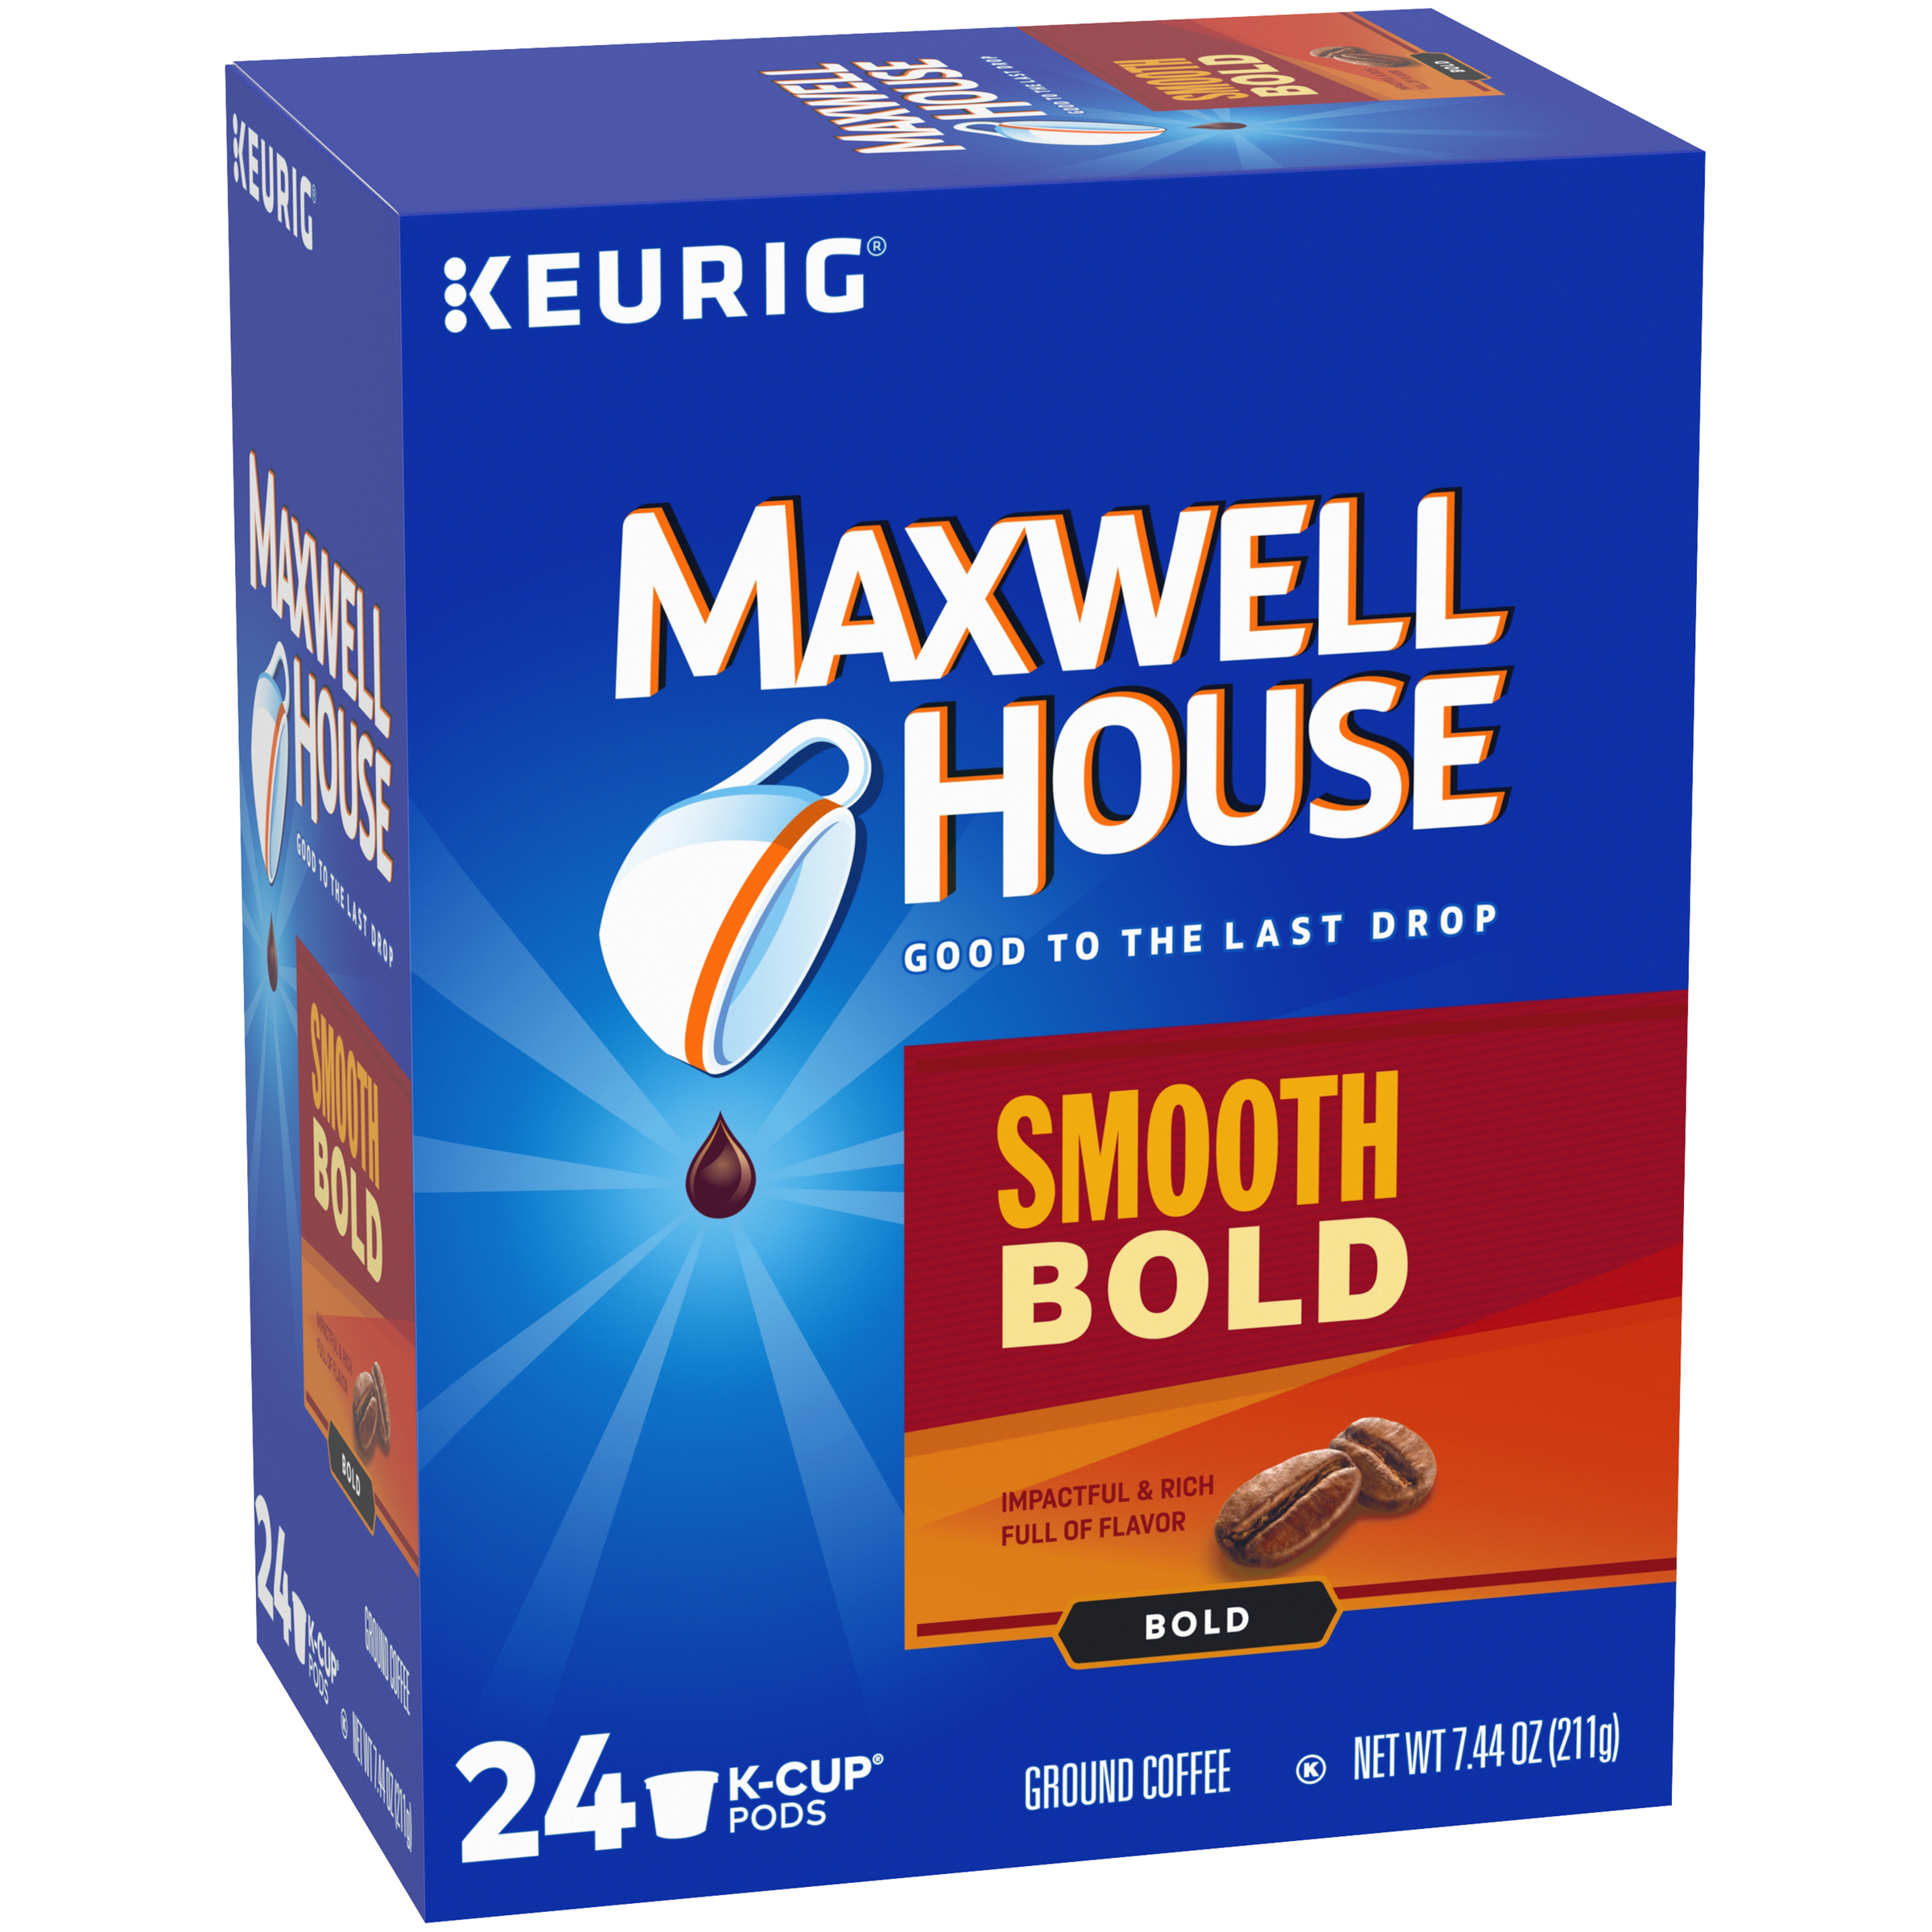 Maxwell House Smooth Bold Coffee K-Cup Pods 24 count Box